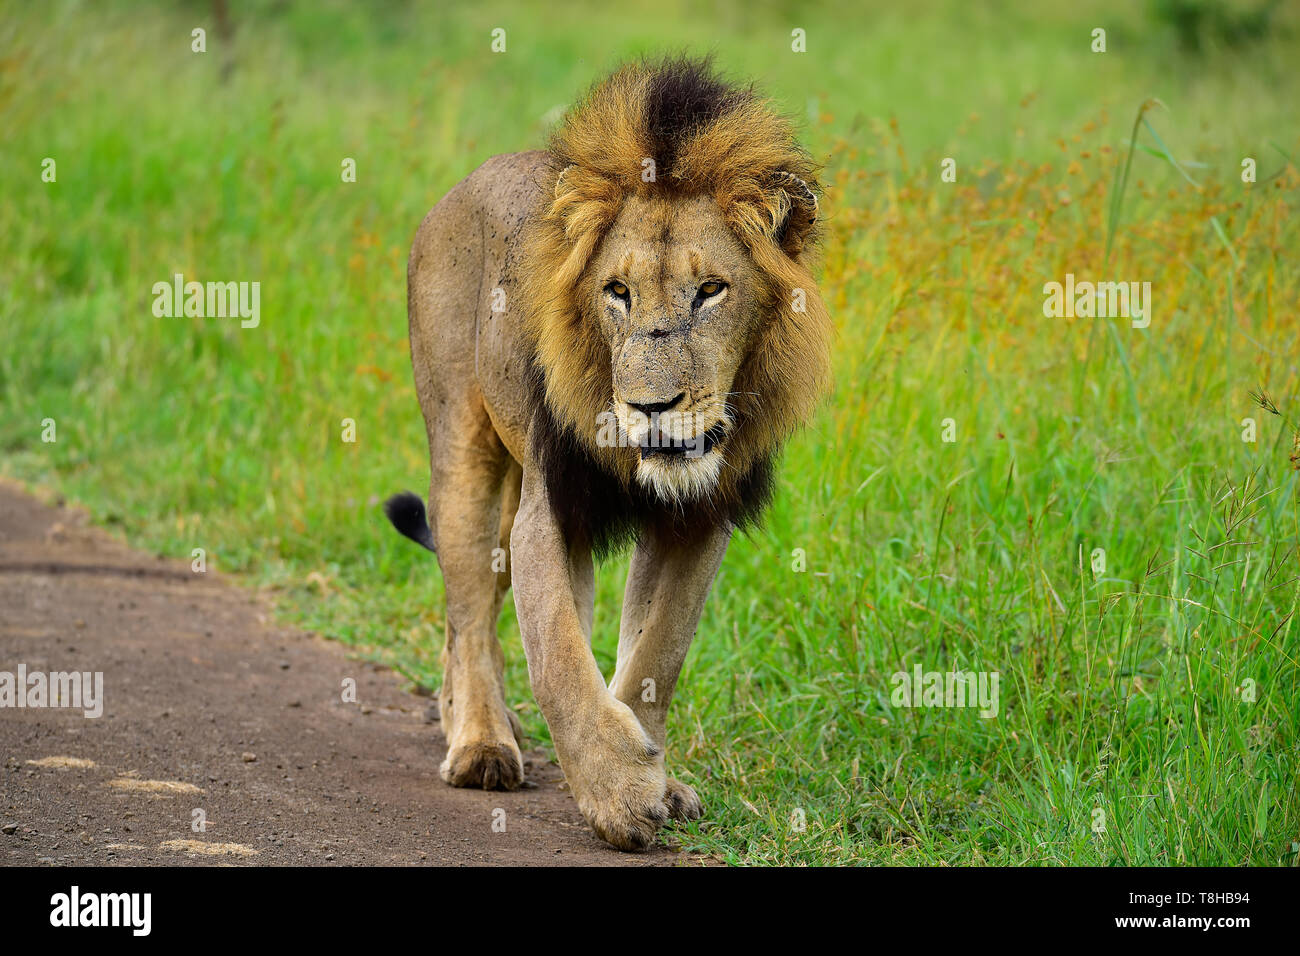 Mature Male Lion Panthera Leo Patrolling his territory Kruger National Park South Africa - Stock Image